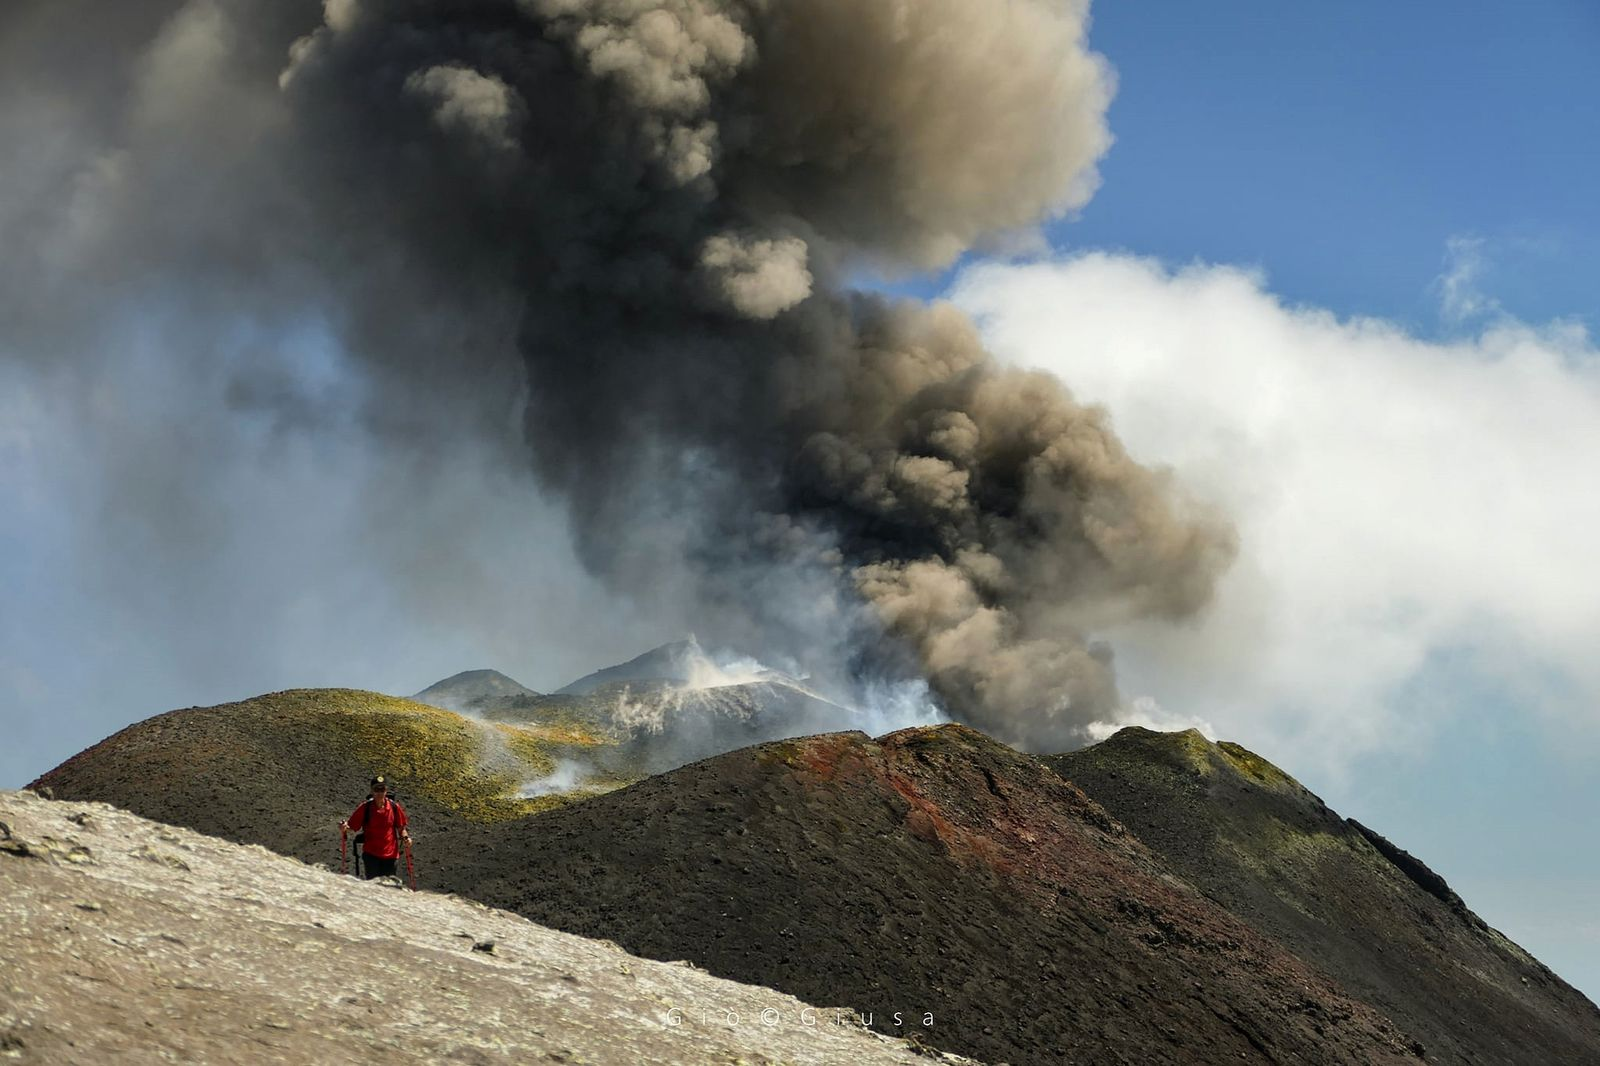 Etna - activity of the new south-eastern crater on 08/29/2020 - photo Gio Giusa